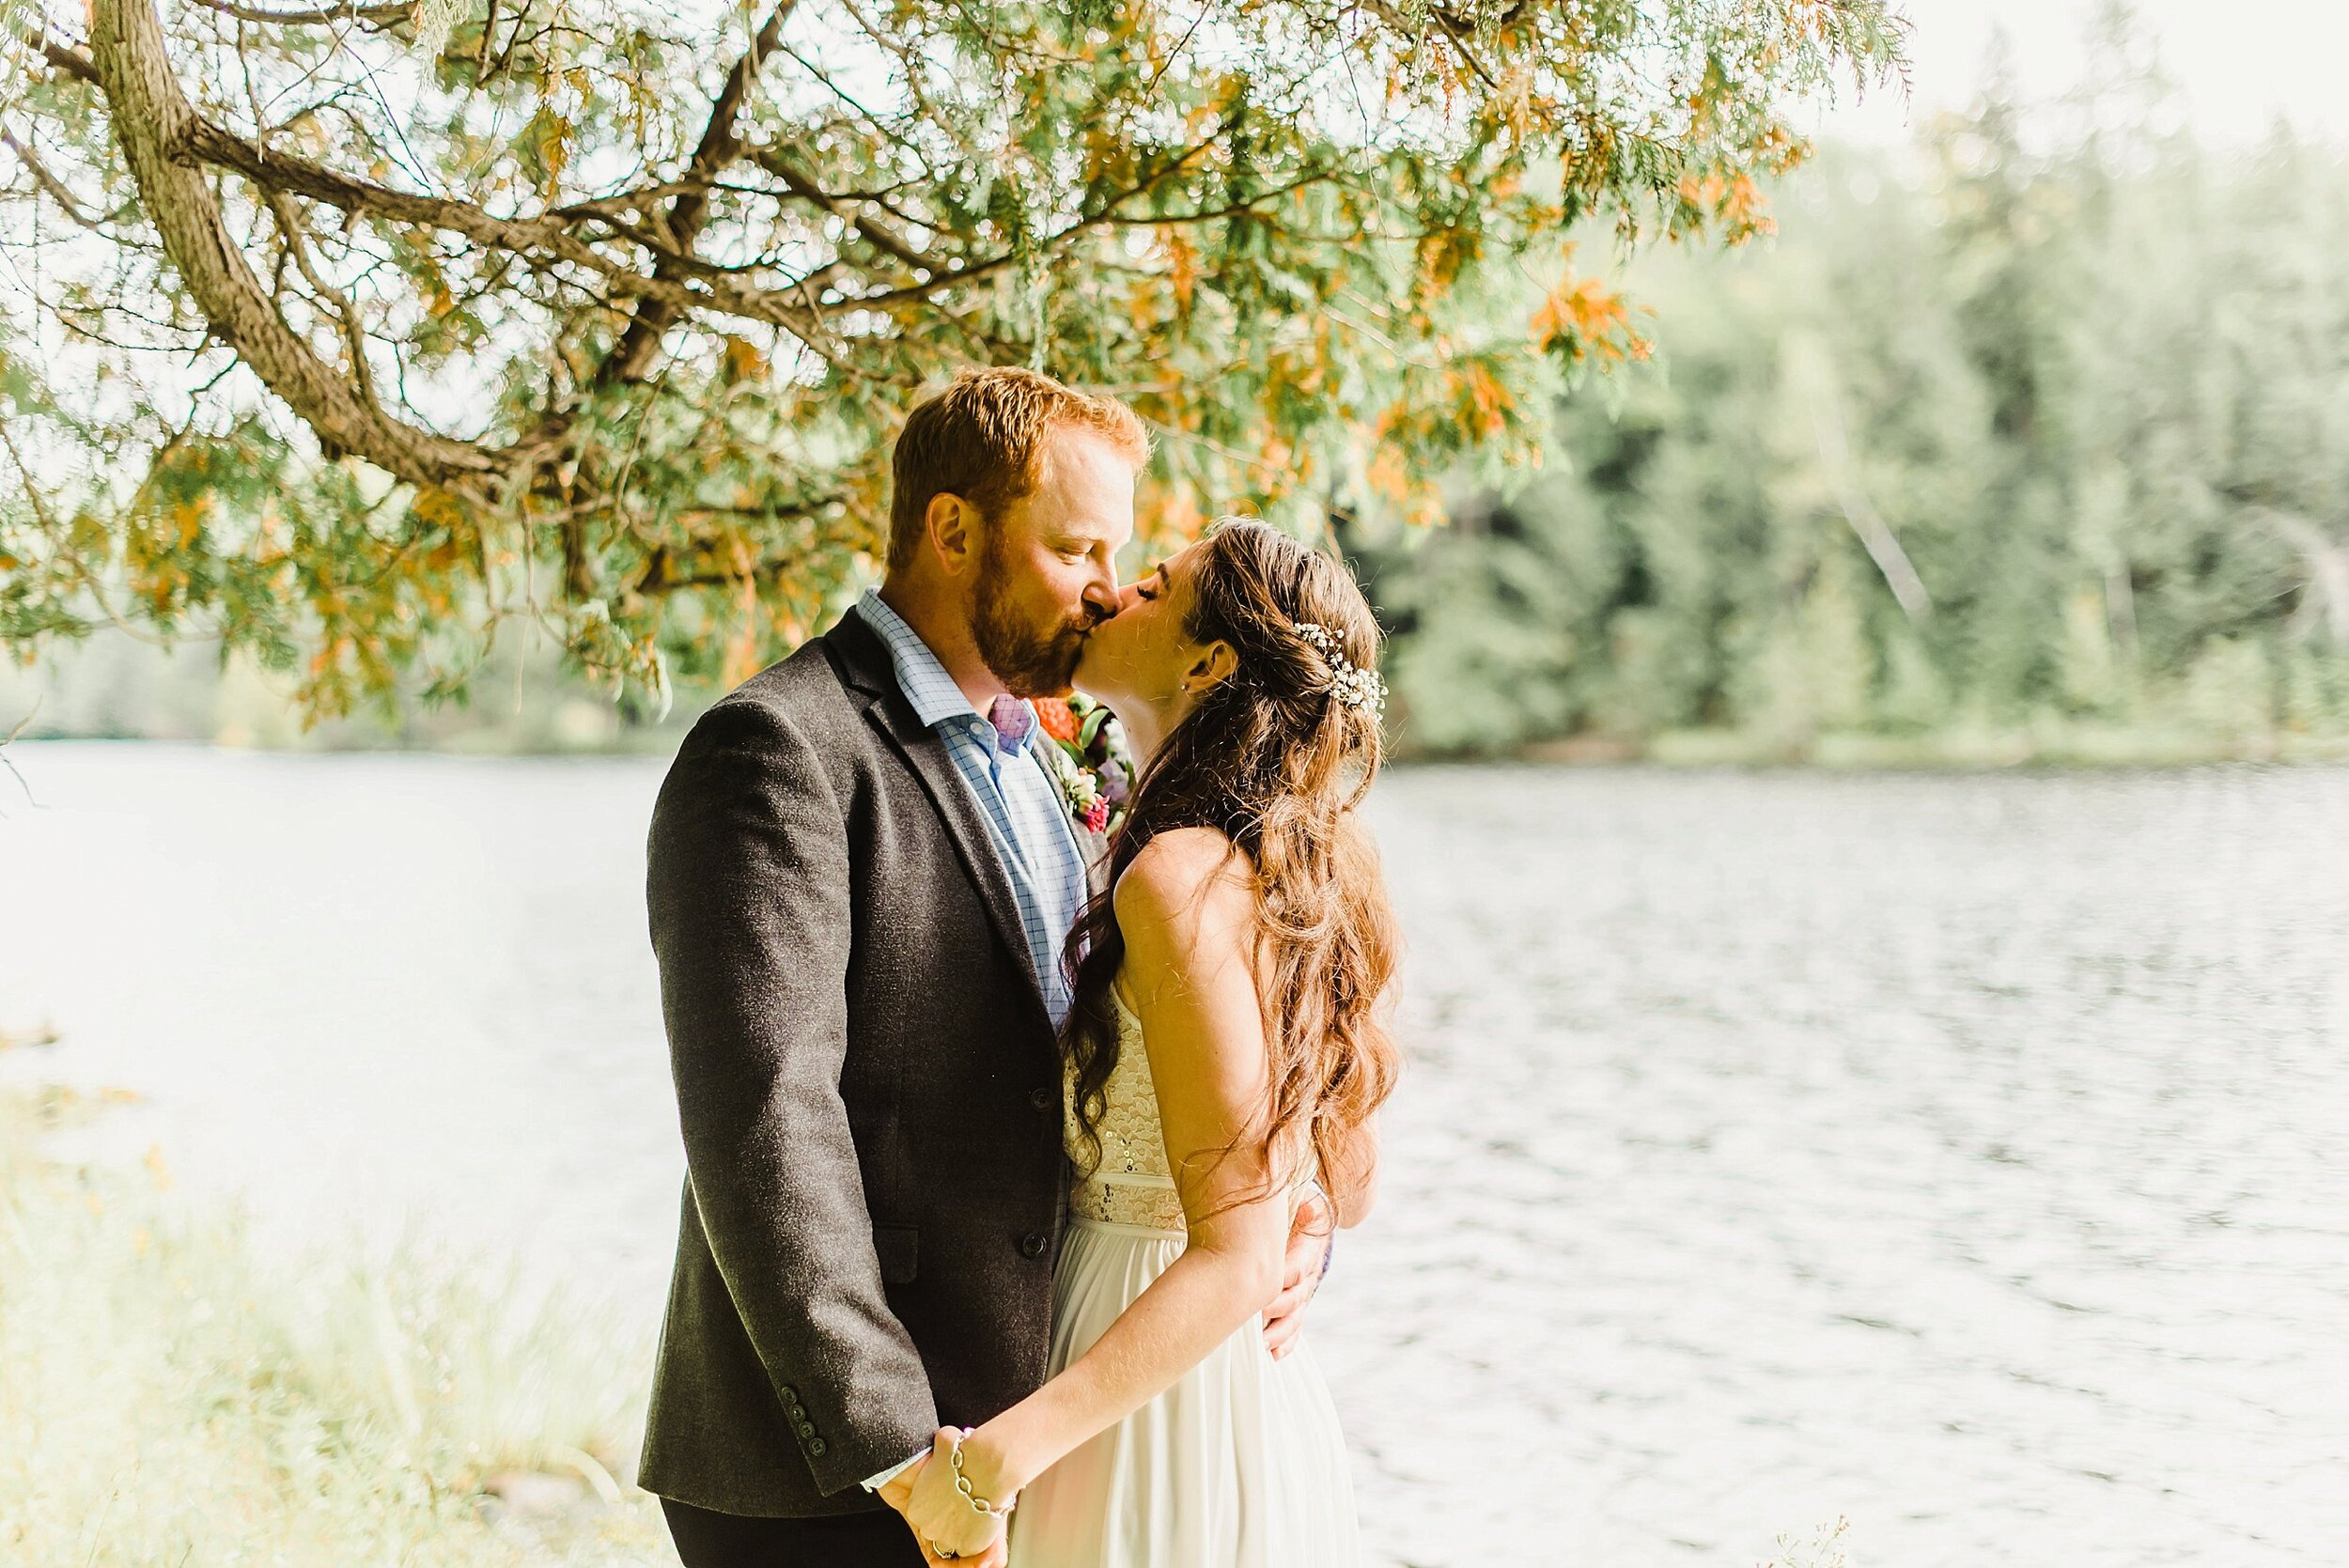 light airy indie fine art ottawa wedding photographer | Ali and Batoul Photography_1257.jpg